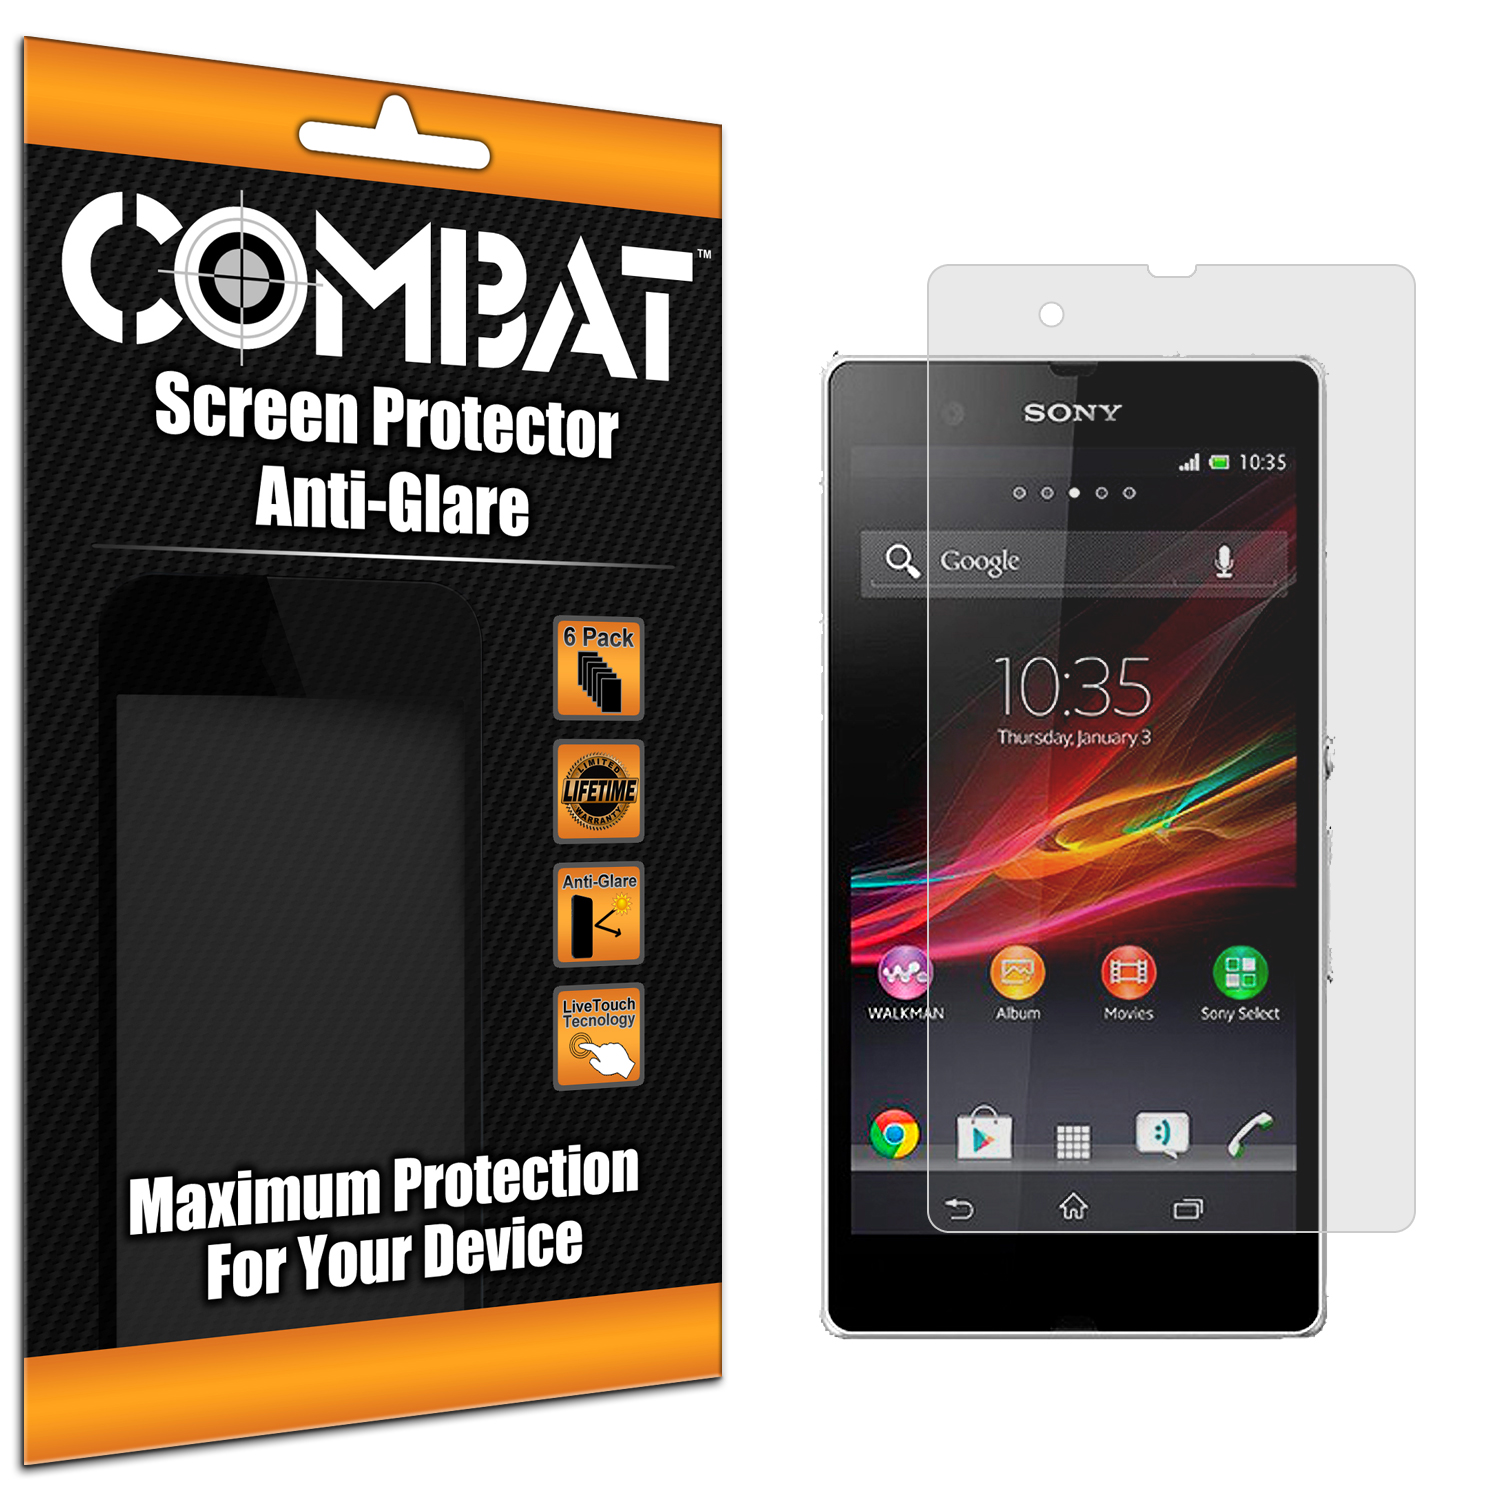 Sony Xperia Z Combat 6 Pack Anti-Glare Matte Screen Protector